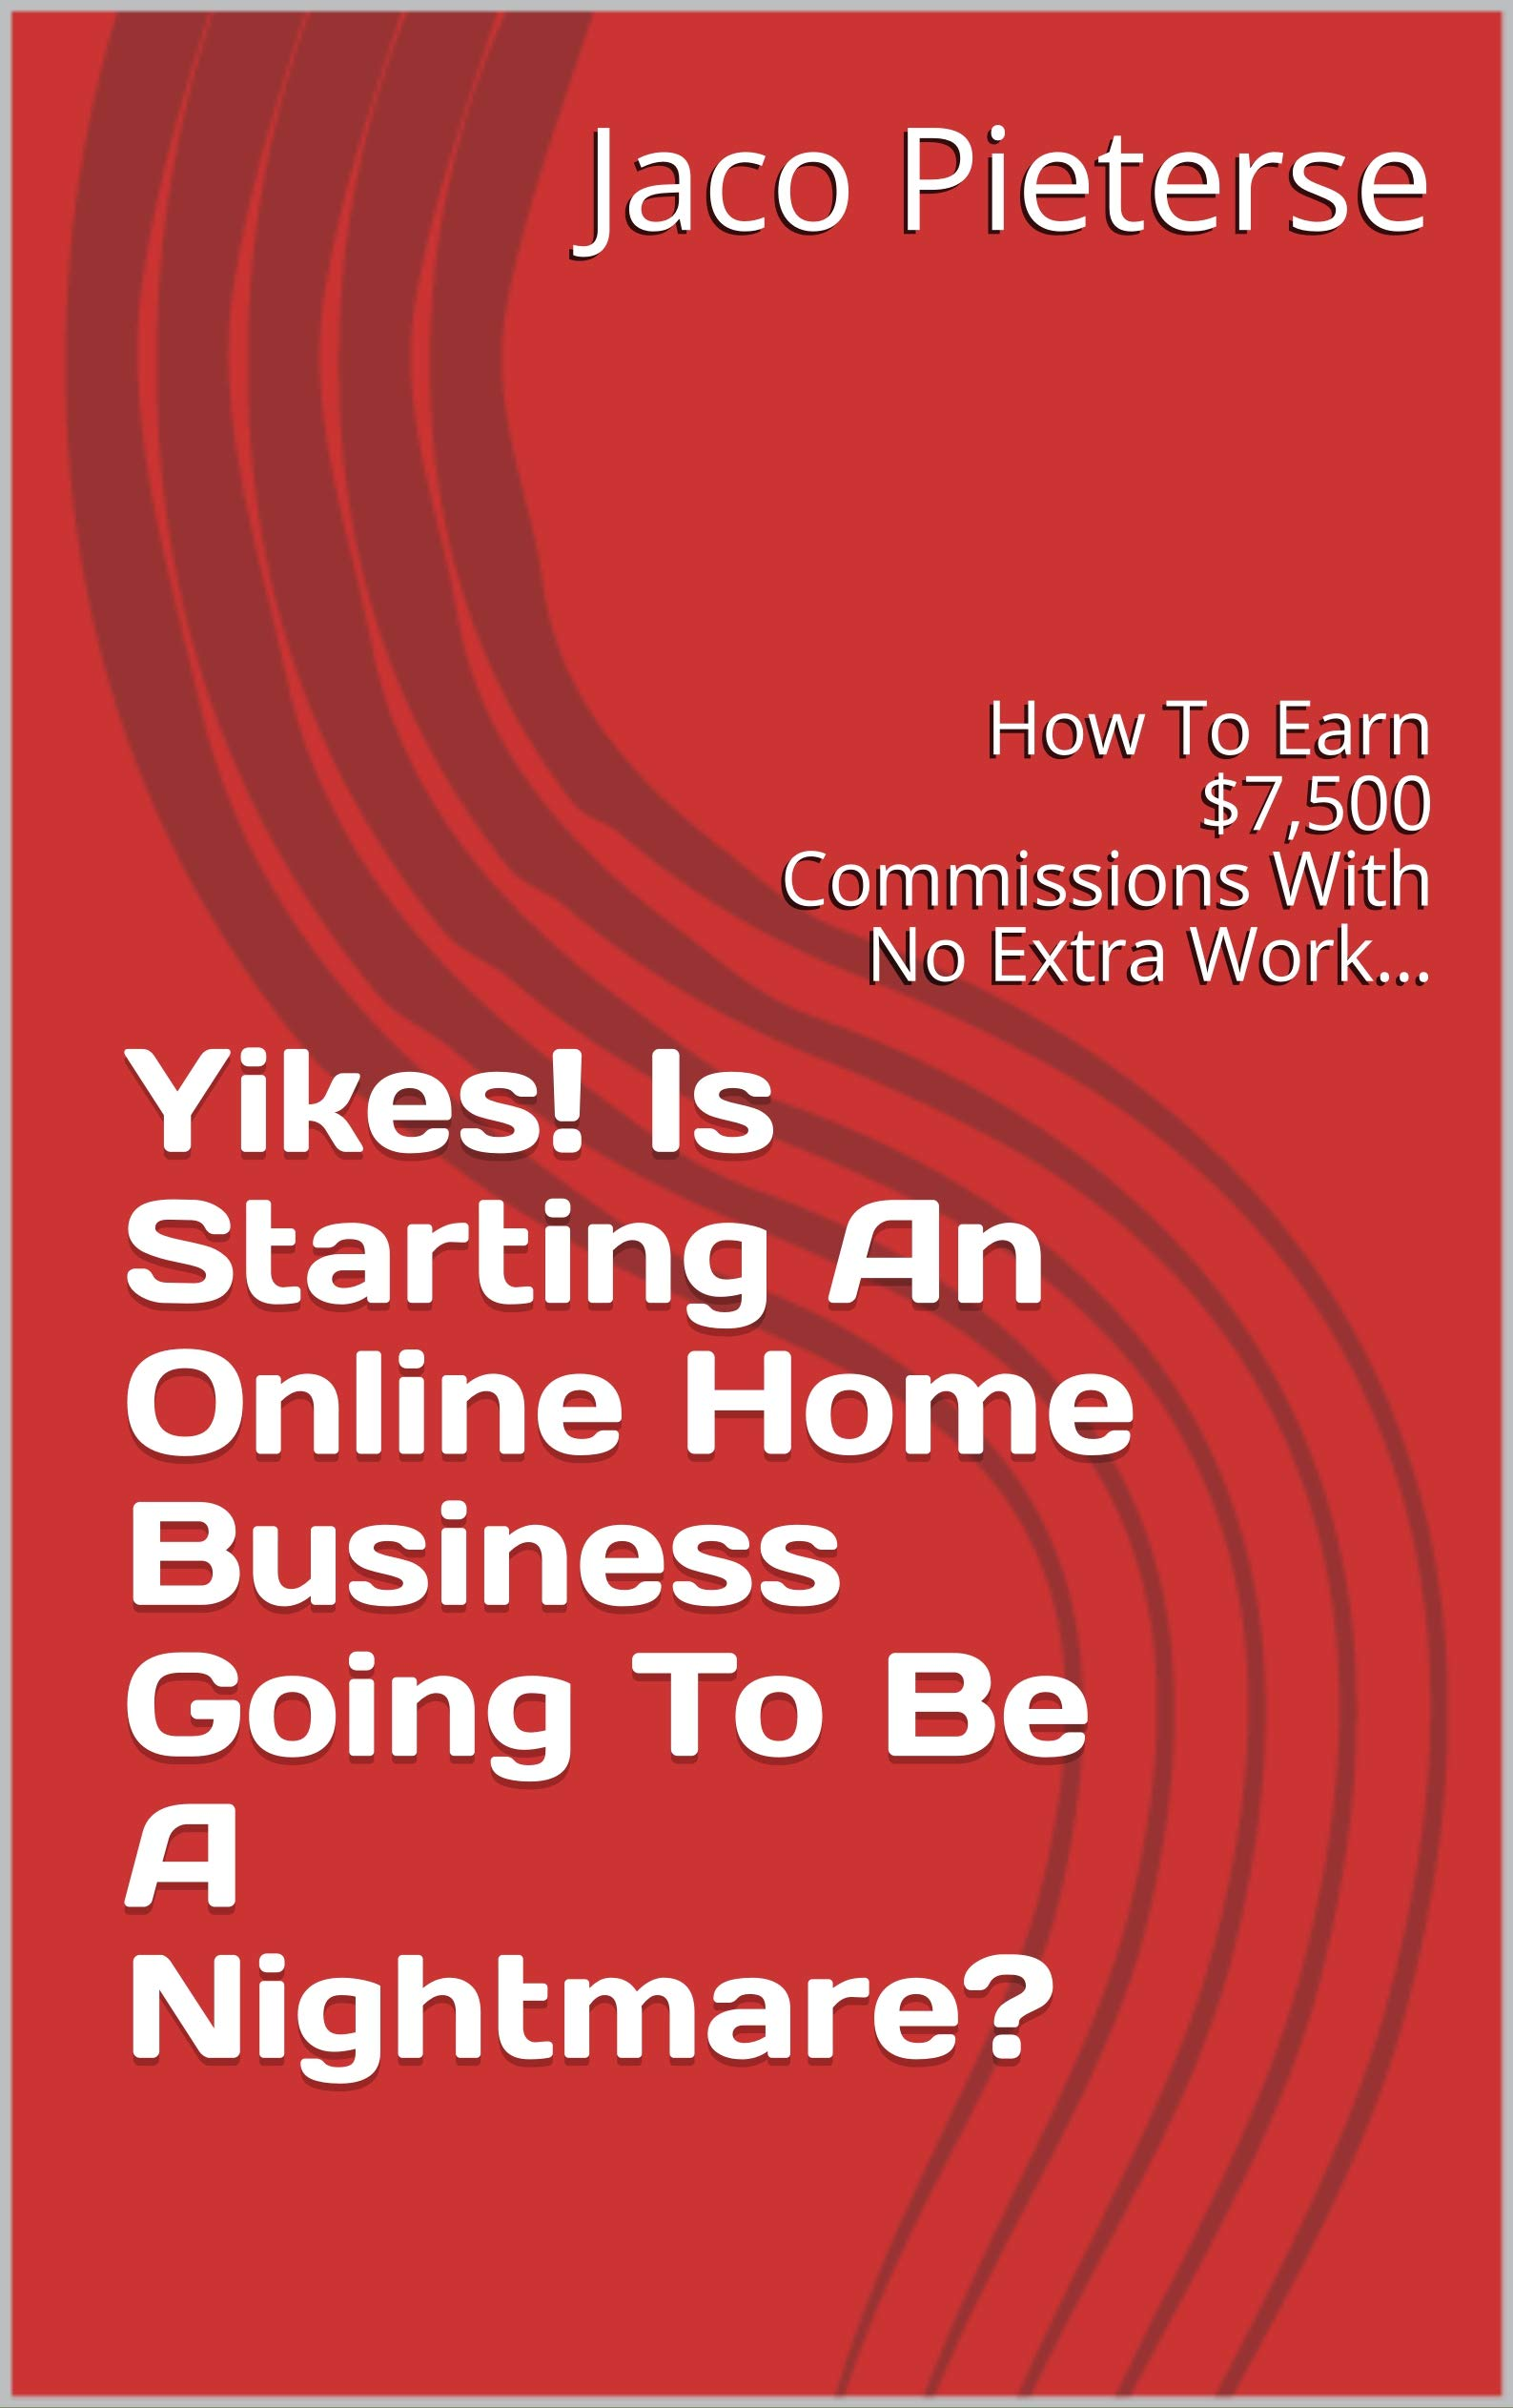 Yikes! Is Starting An Online Home Business Going To Be A Nightmare?: How To Earn $7,500 Commissions With No Extra Work…